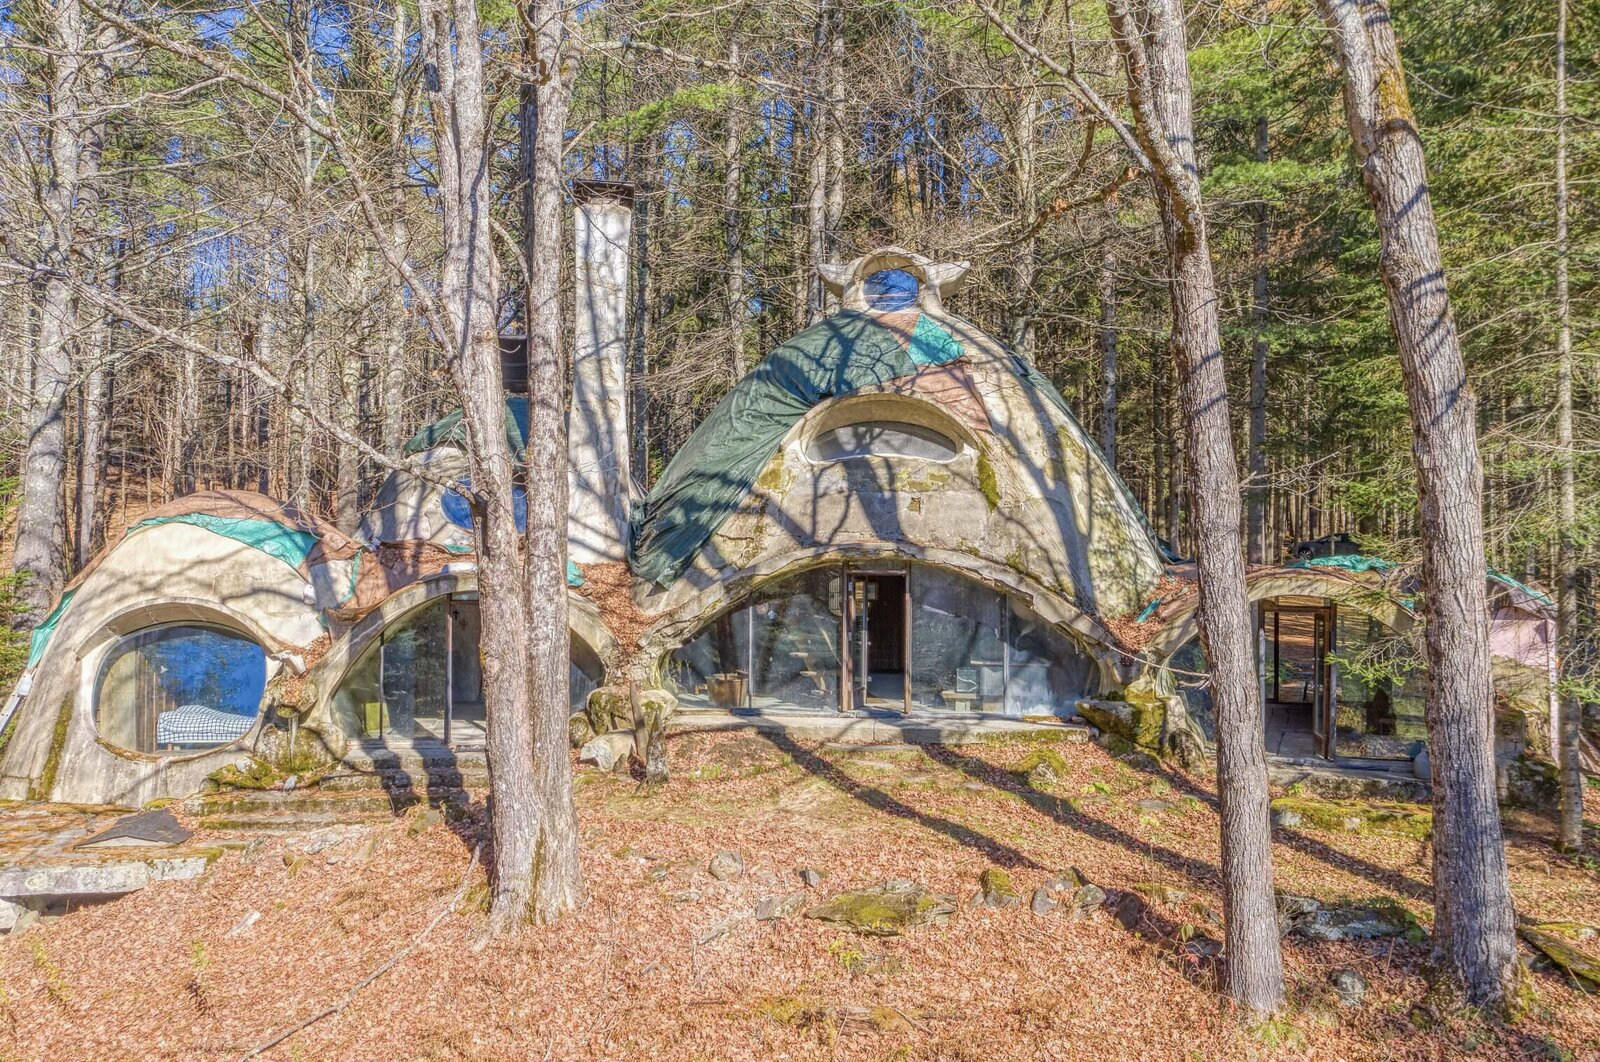 Tarps and temporary fixes are in place to help protect the structure while a buyer is located.  Photo 11 of 12 in Asking $220K, an Architect's Handcrafted Earthen Home Seeks a Visionary Buyer in Vermont